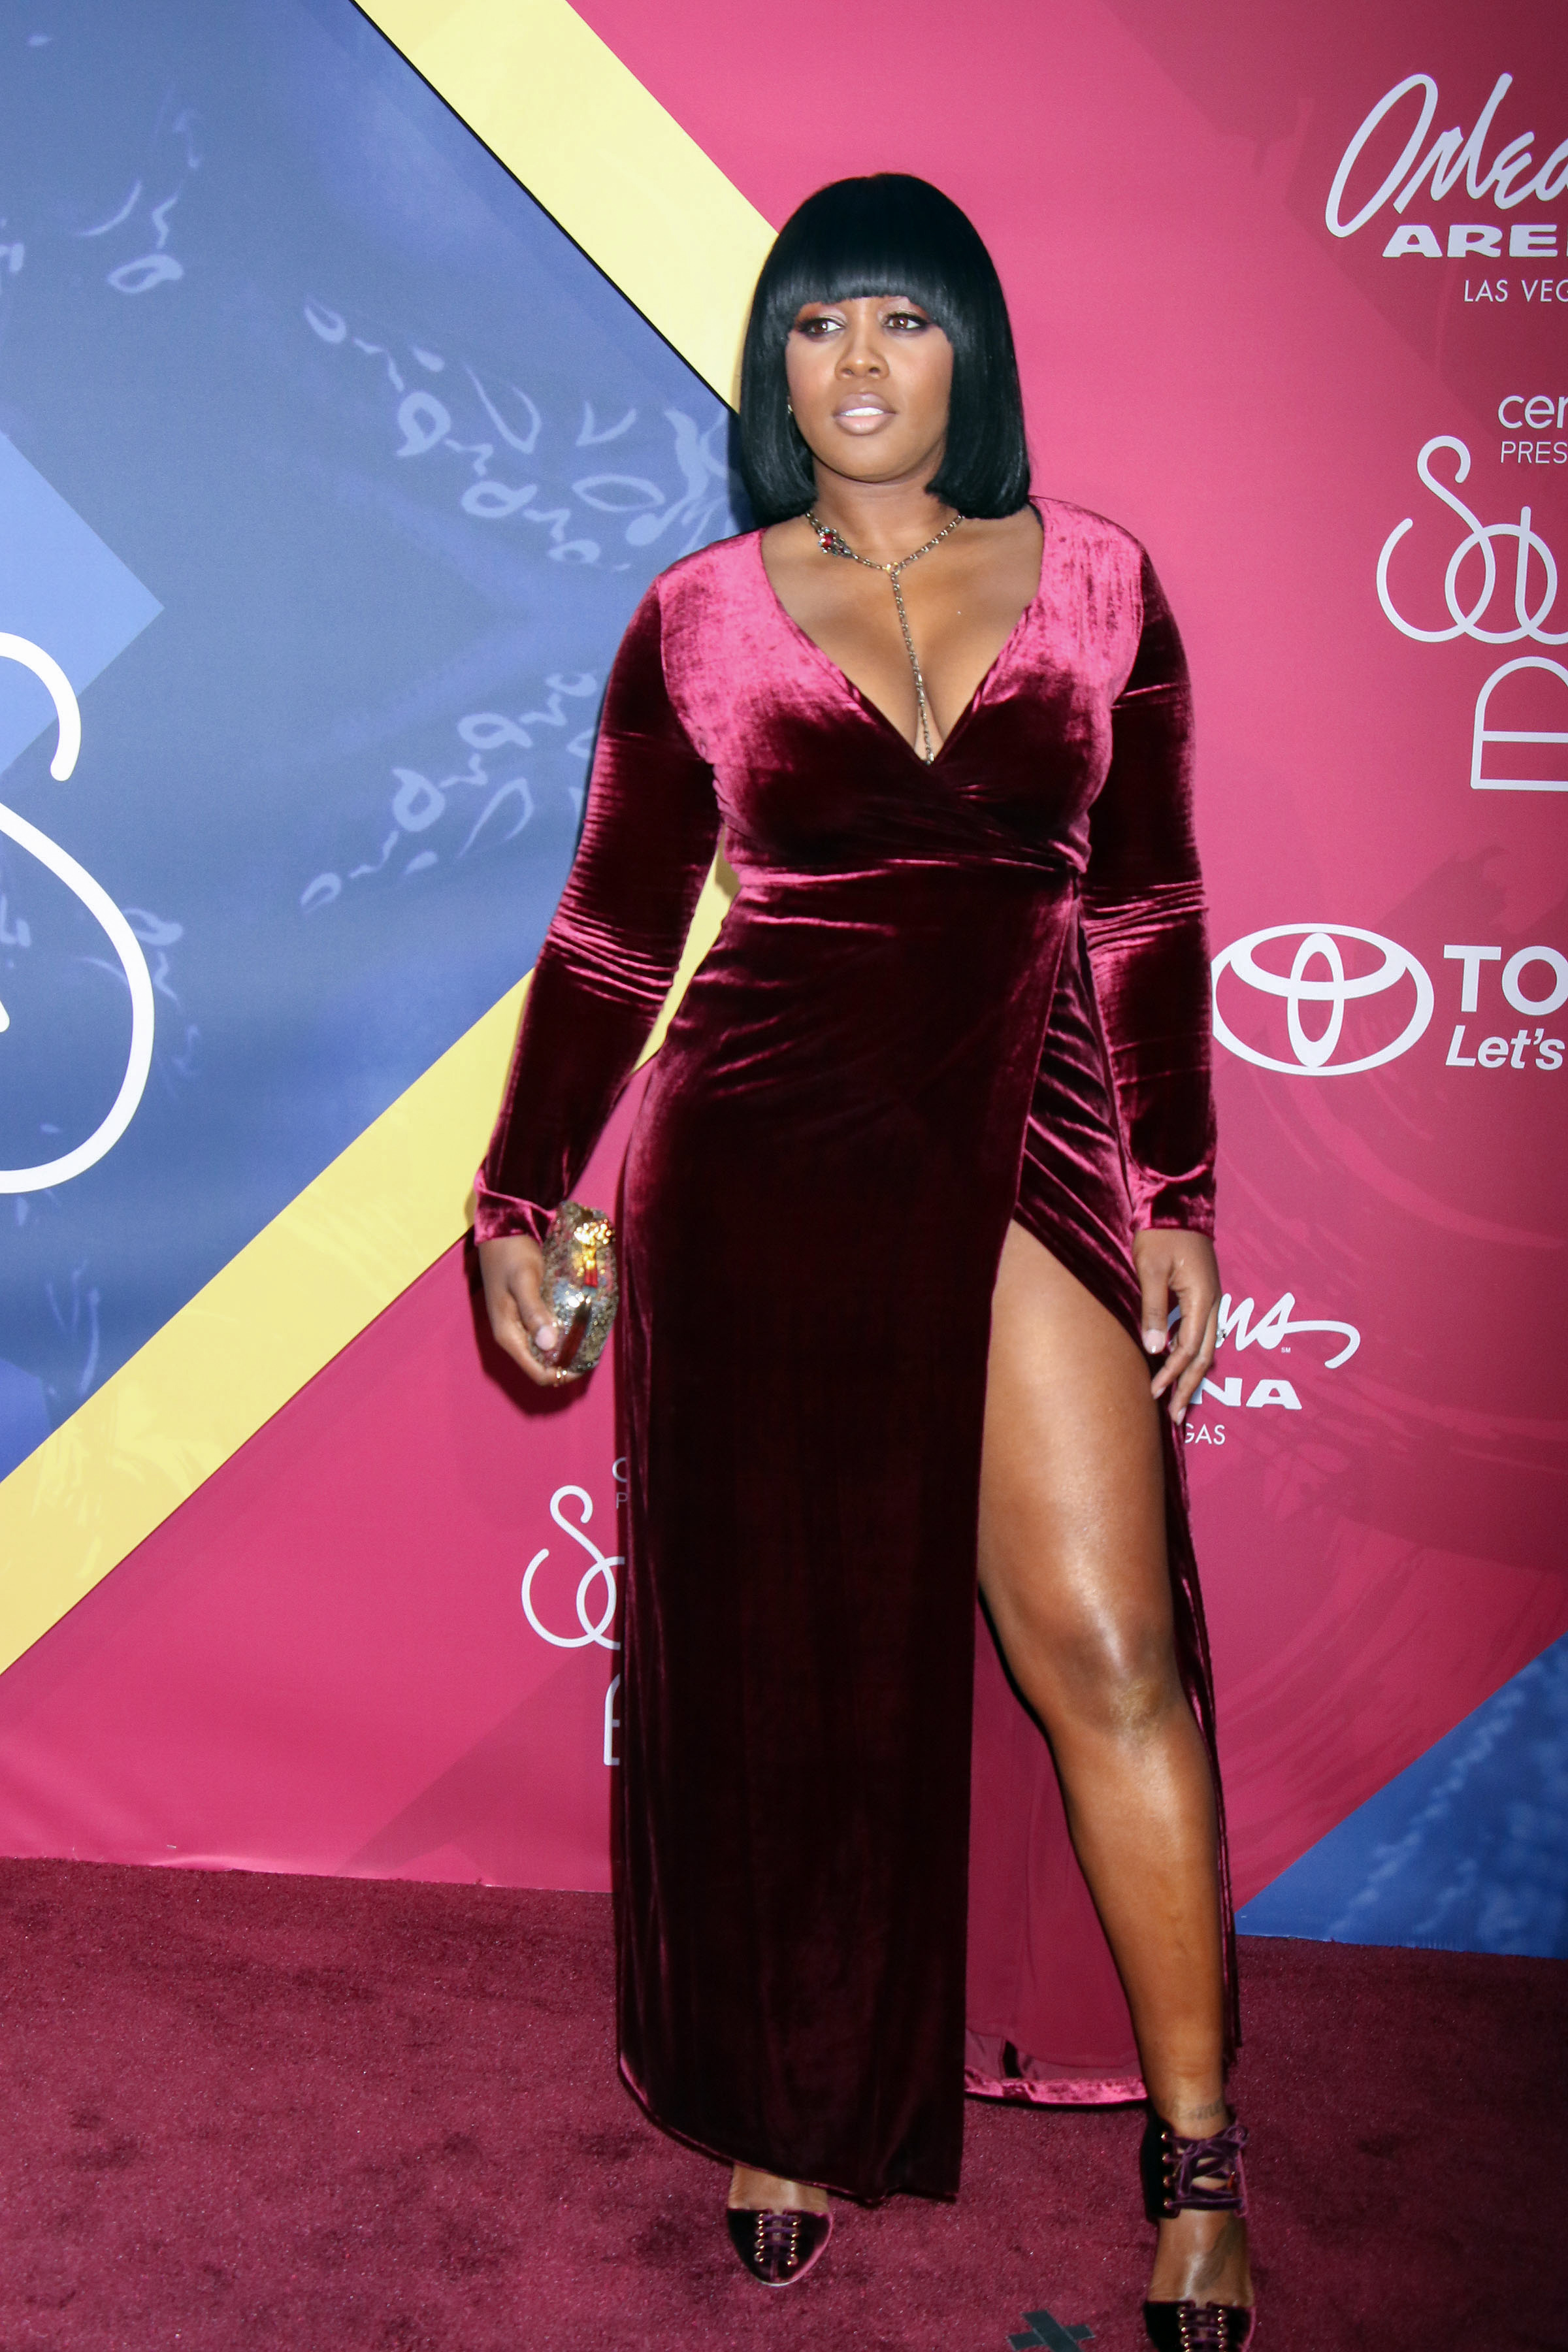 11/06/2016 - Remy Ma - 2016 Soul Train Music Awards - Arrivals - Orleans Arena at the Orleans Hotel & Casino - Las Vegas, NV, USA - Keywords: Vertical, Award Show, Arrival, Portrait, Photography, Arts Culture and Entertainment, Attending, Person, People, Celebrity, Celebrities, Red Carpet Event, Annual Event, Nevada Orientation: Portrait Face Count: 1 - False - Photo Credit: PRN / PRPhotos.com - Contact (1-866-551-7827) - Portrait Face Count: 1